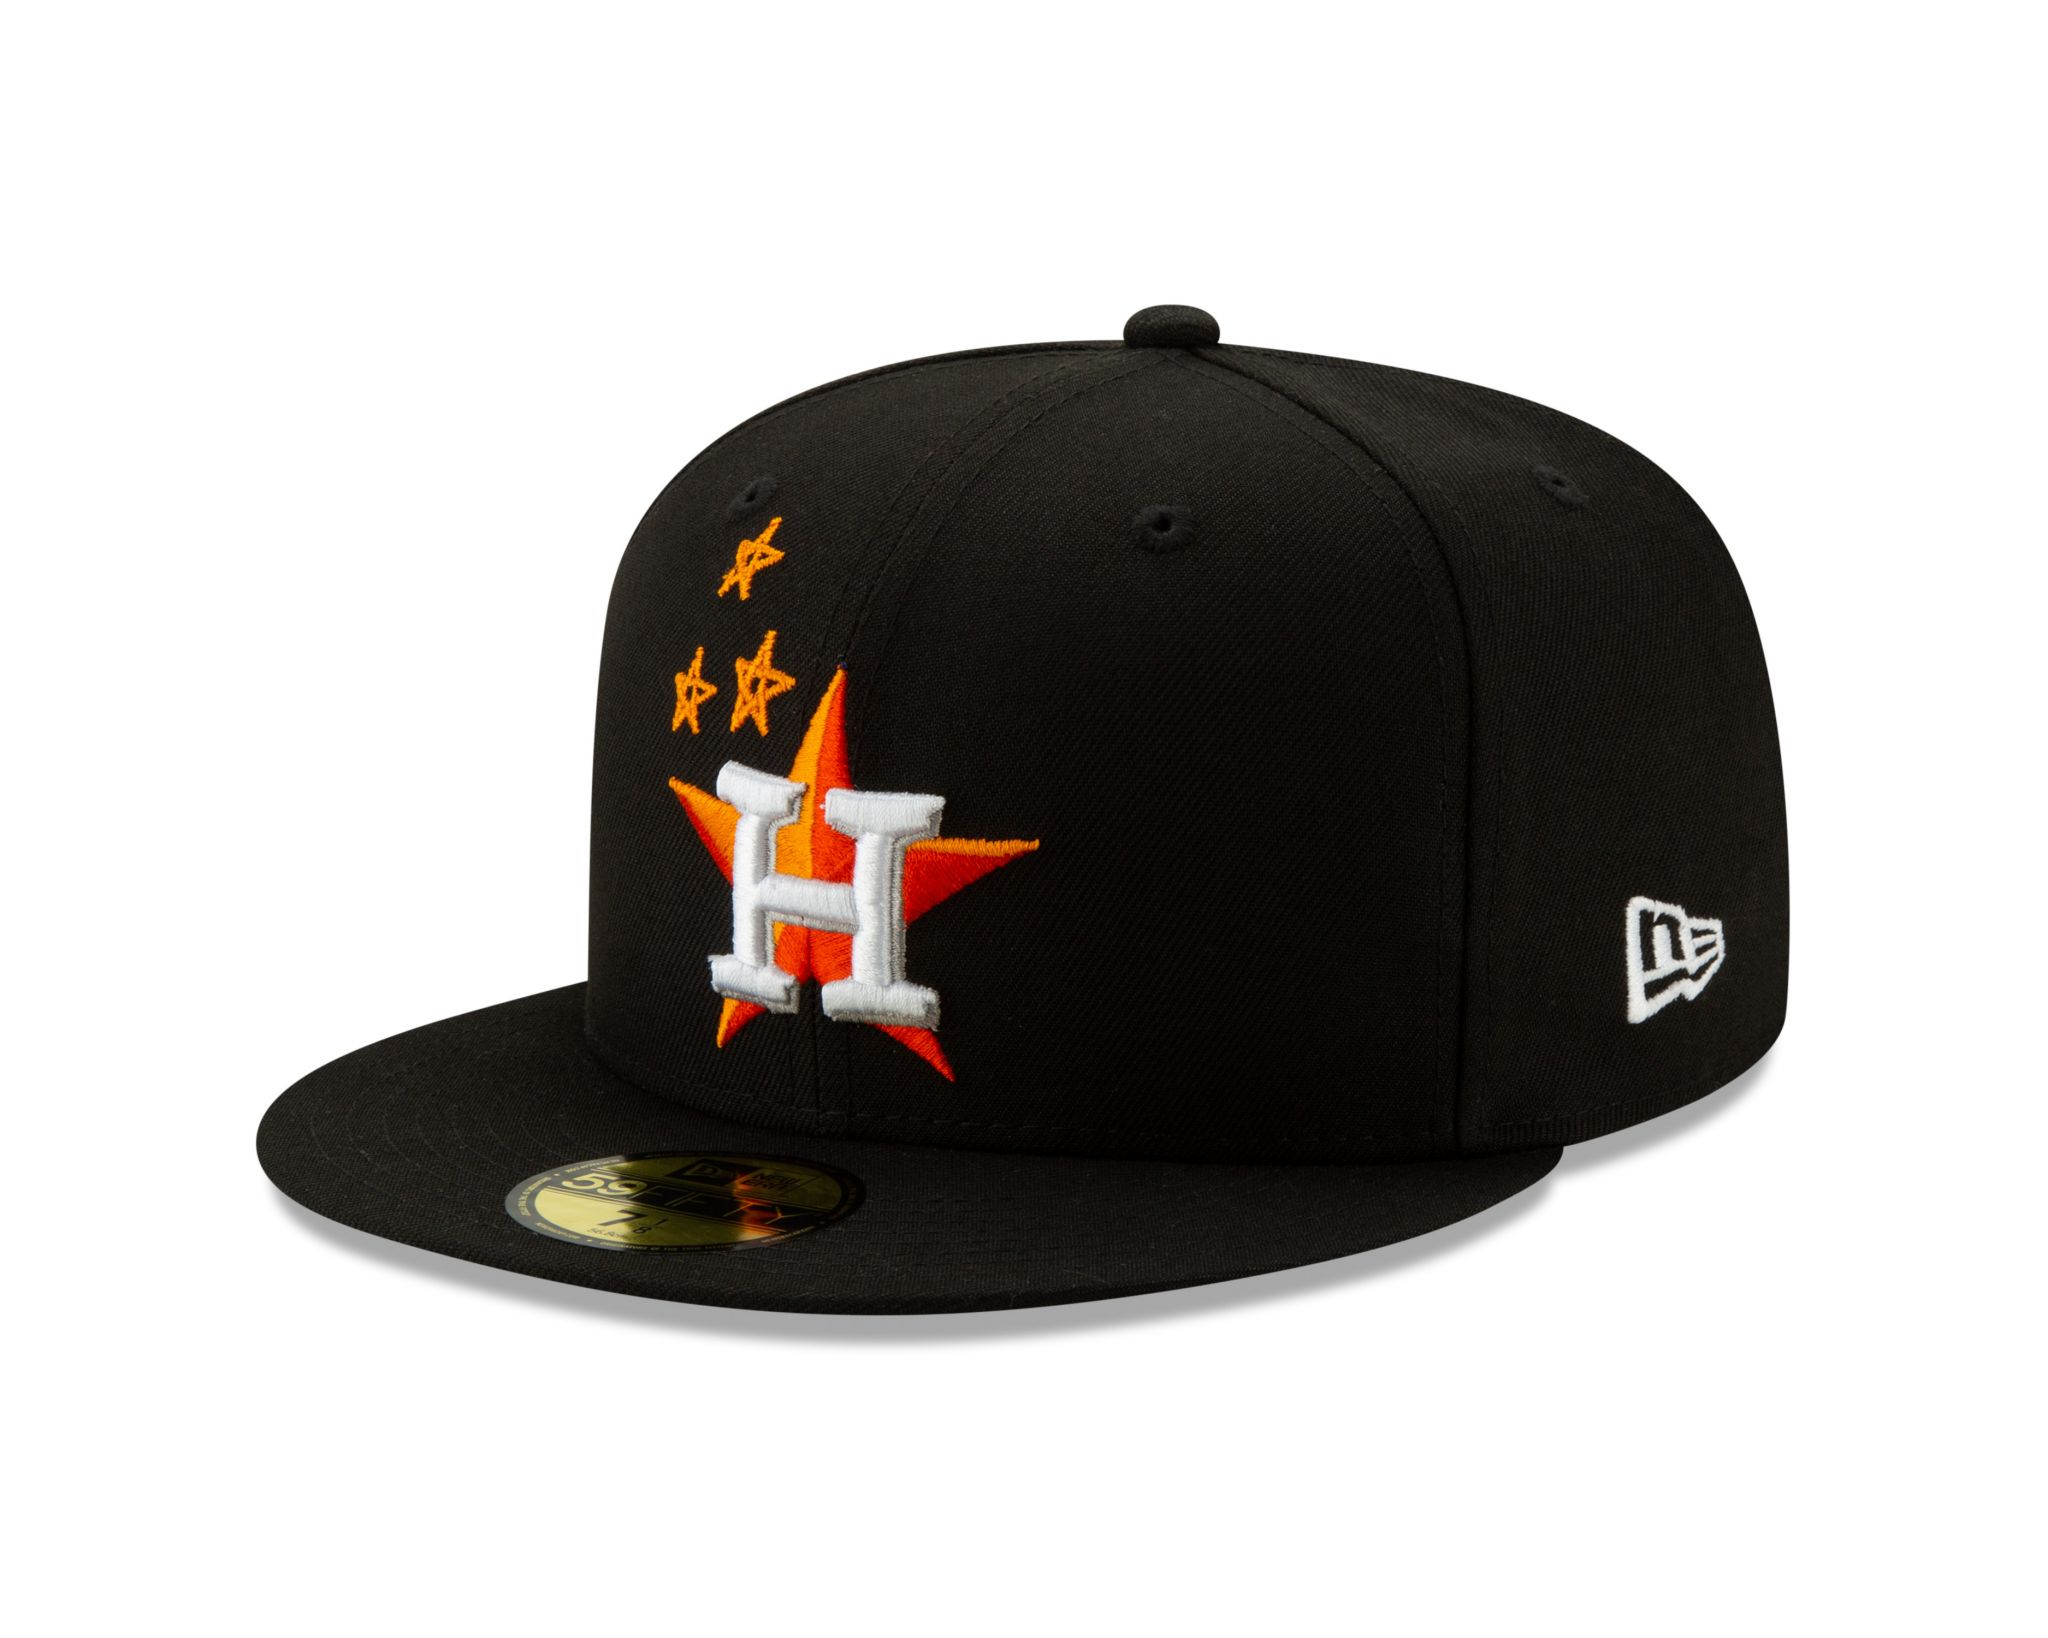 new concept 0b30f 4c99f Take a look at Travis Scott s limited edition Astros hats - Houston  Chronicle